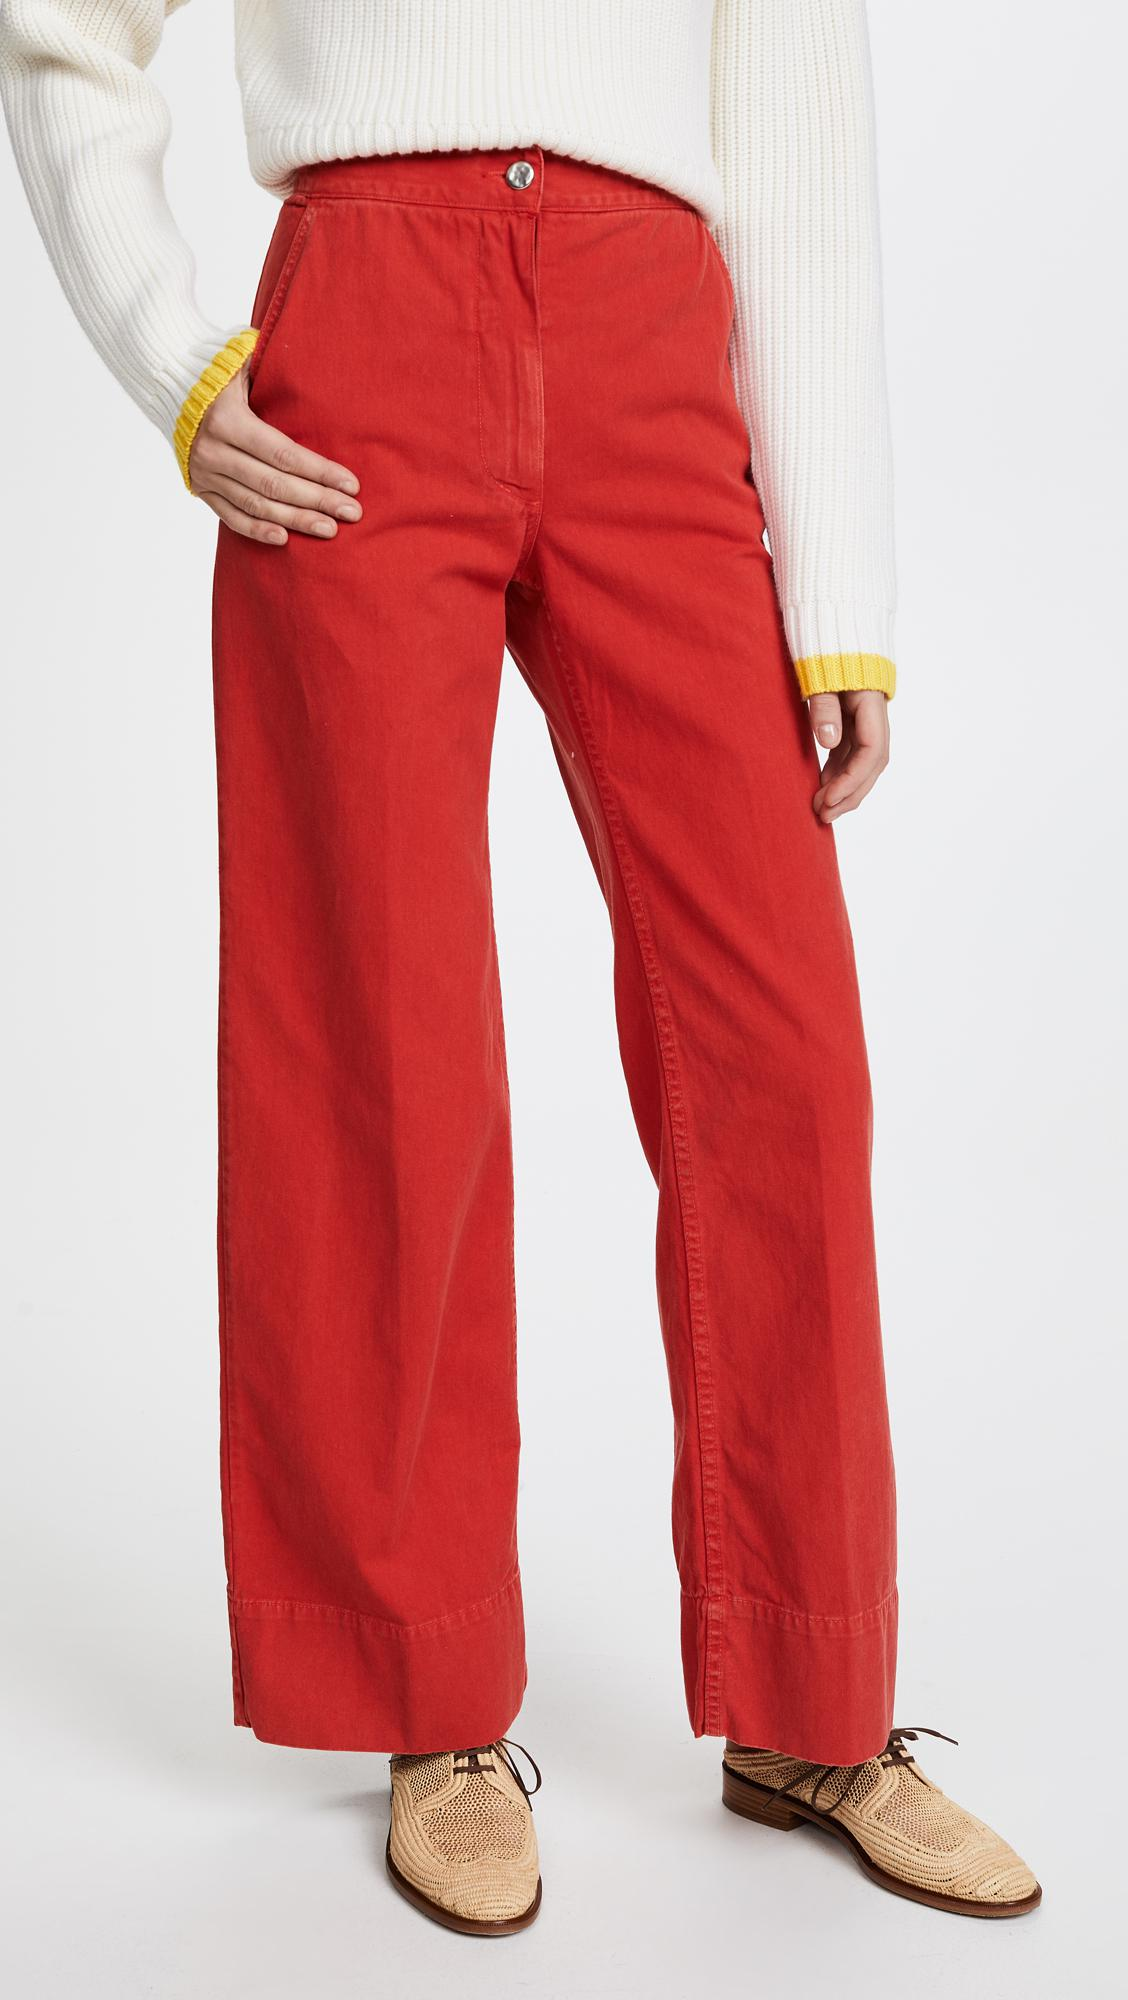 Clean Bishop Wide Leg Corduroy Pants Rachel Comey Shopping Online With Mastercard Cheap Authentic Best Prices Cheap Sale Reliable Sale Shop Offer iVyD4BHsu